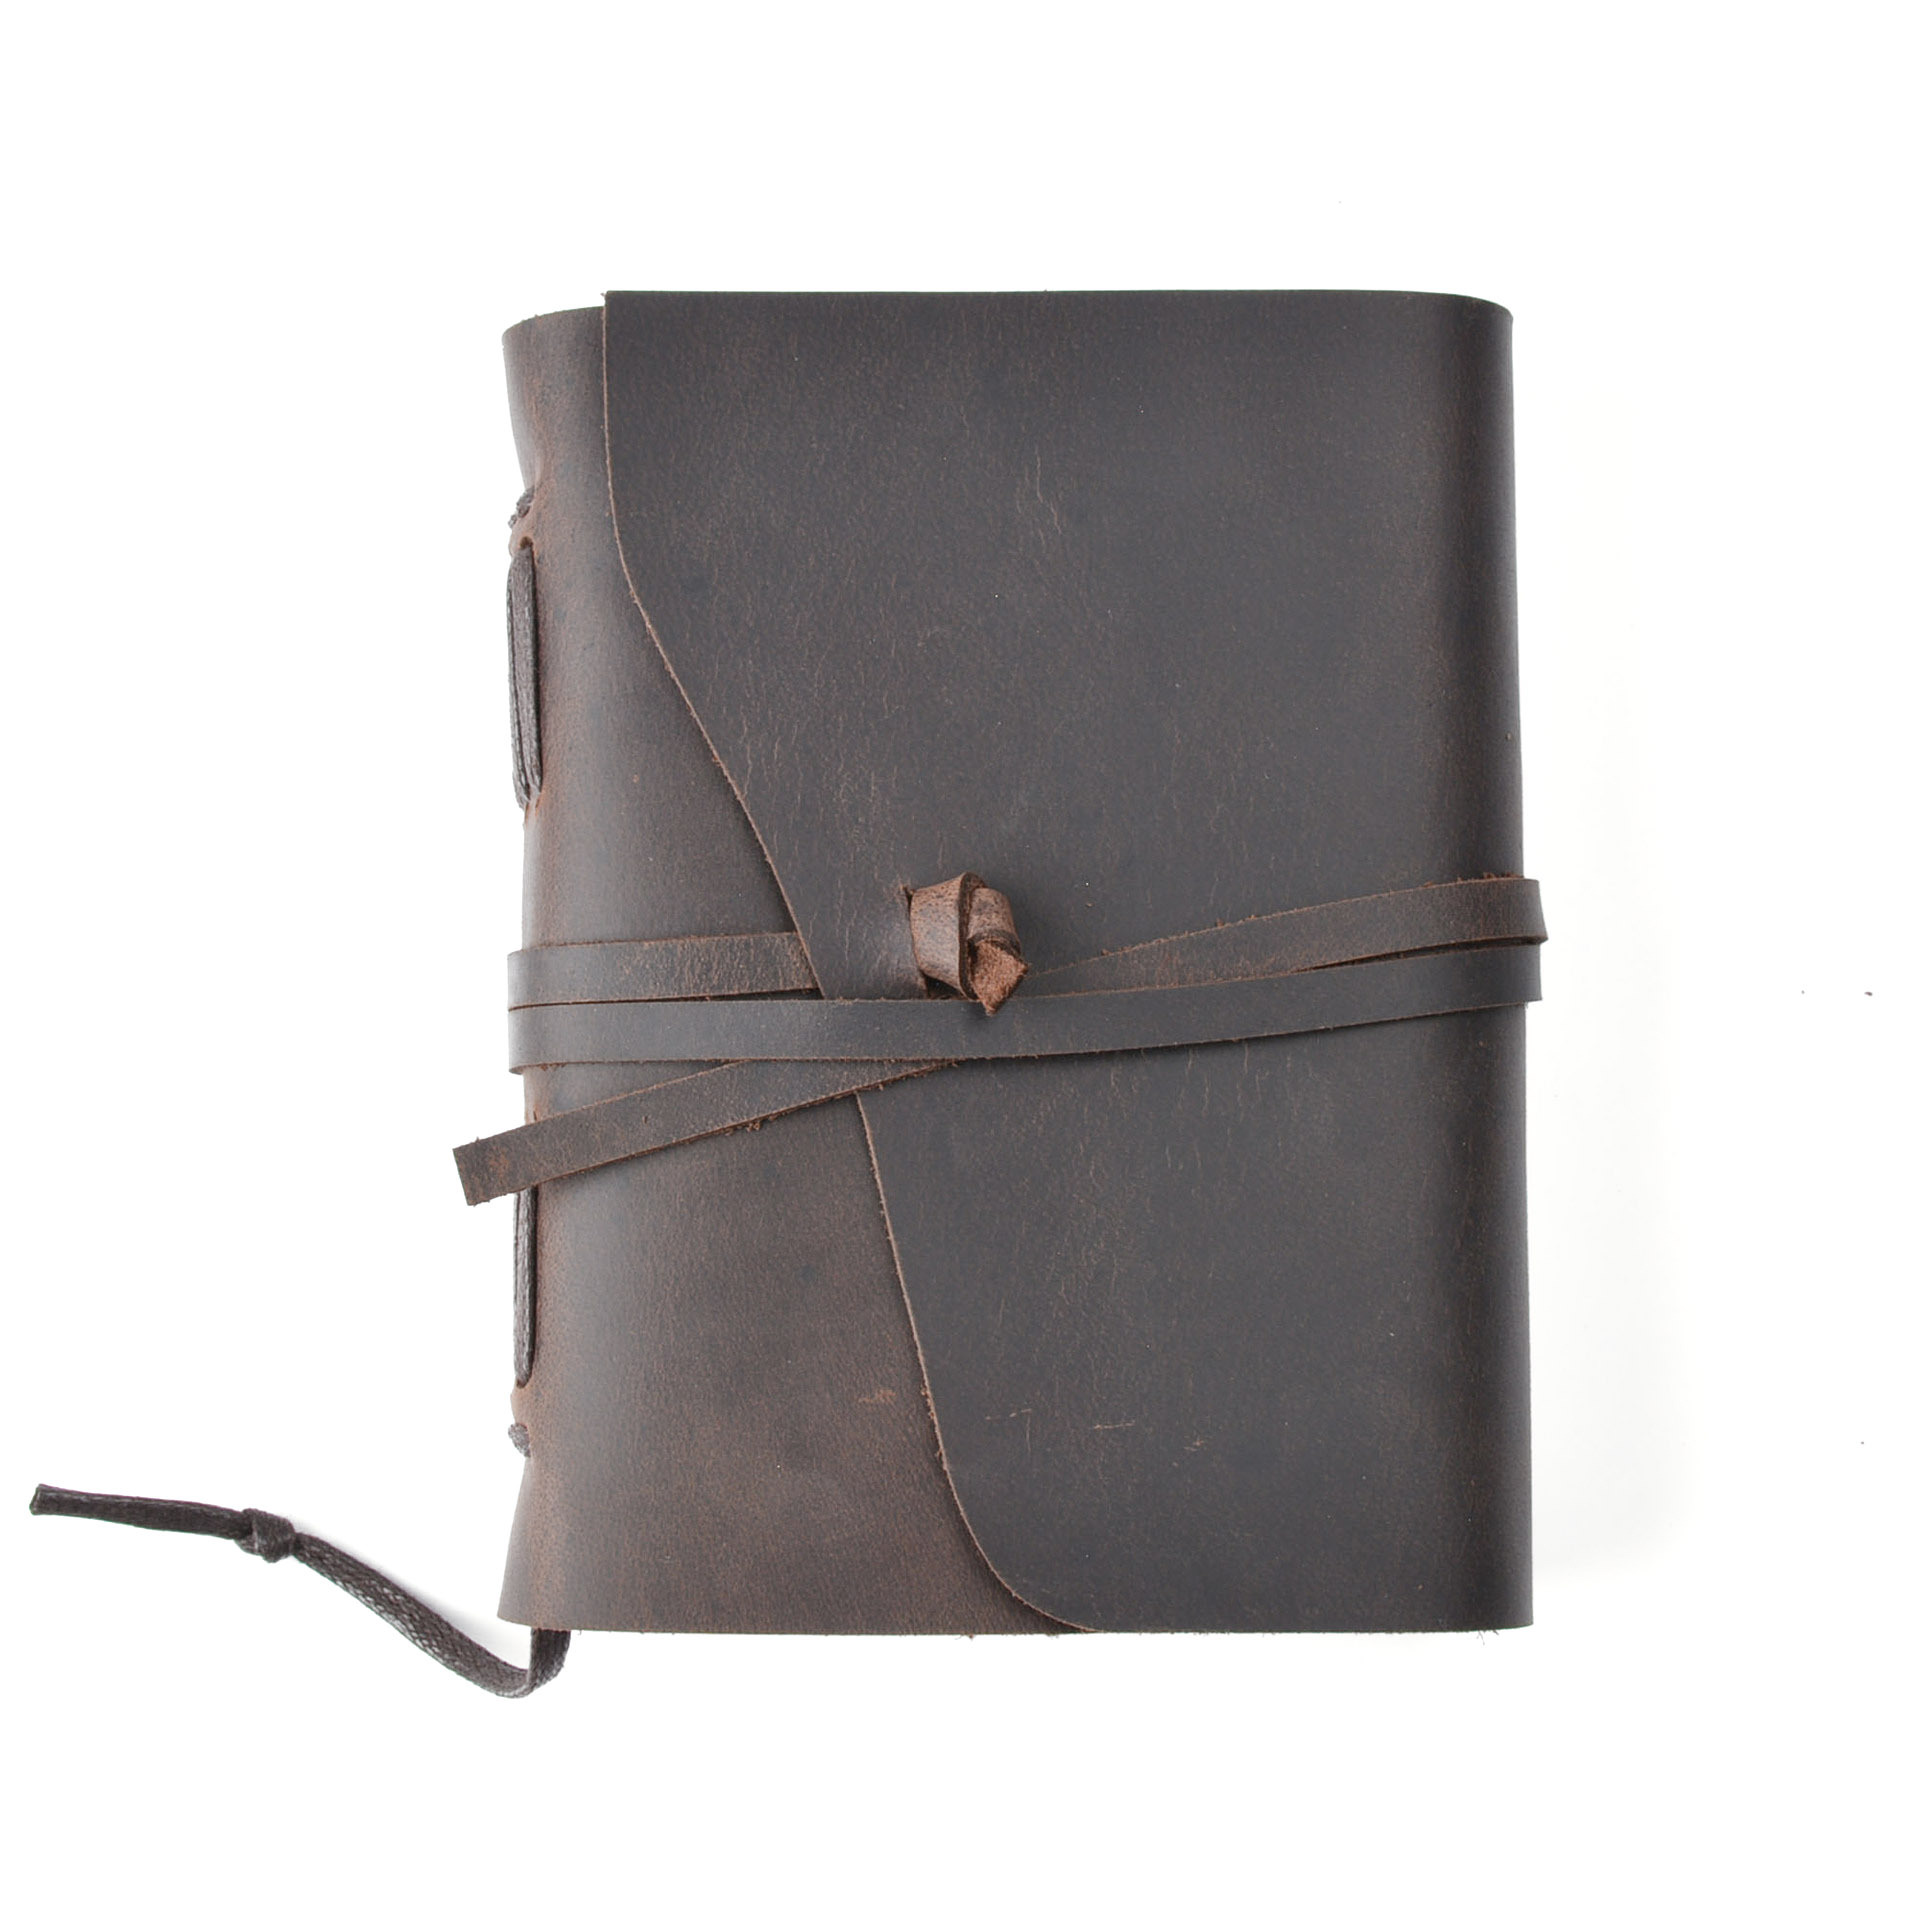 junetree Vintage Handmade Leather Diary Notebook Sketchbook Travel Journal Blank Writing Paper Note Books Gifts Stationery